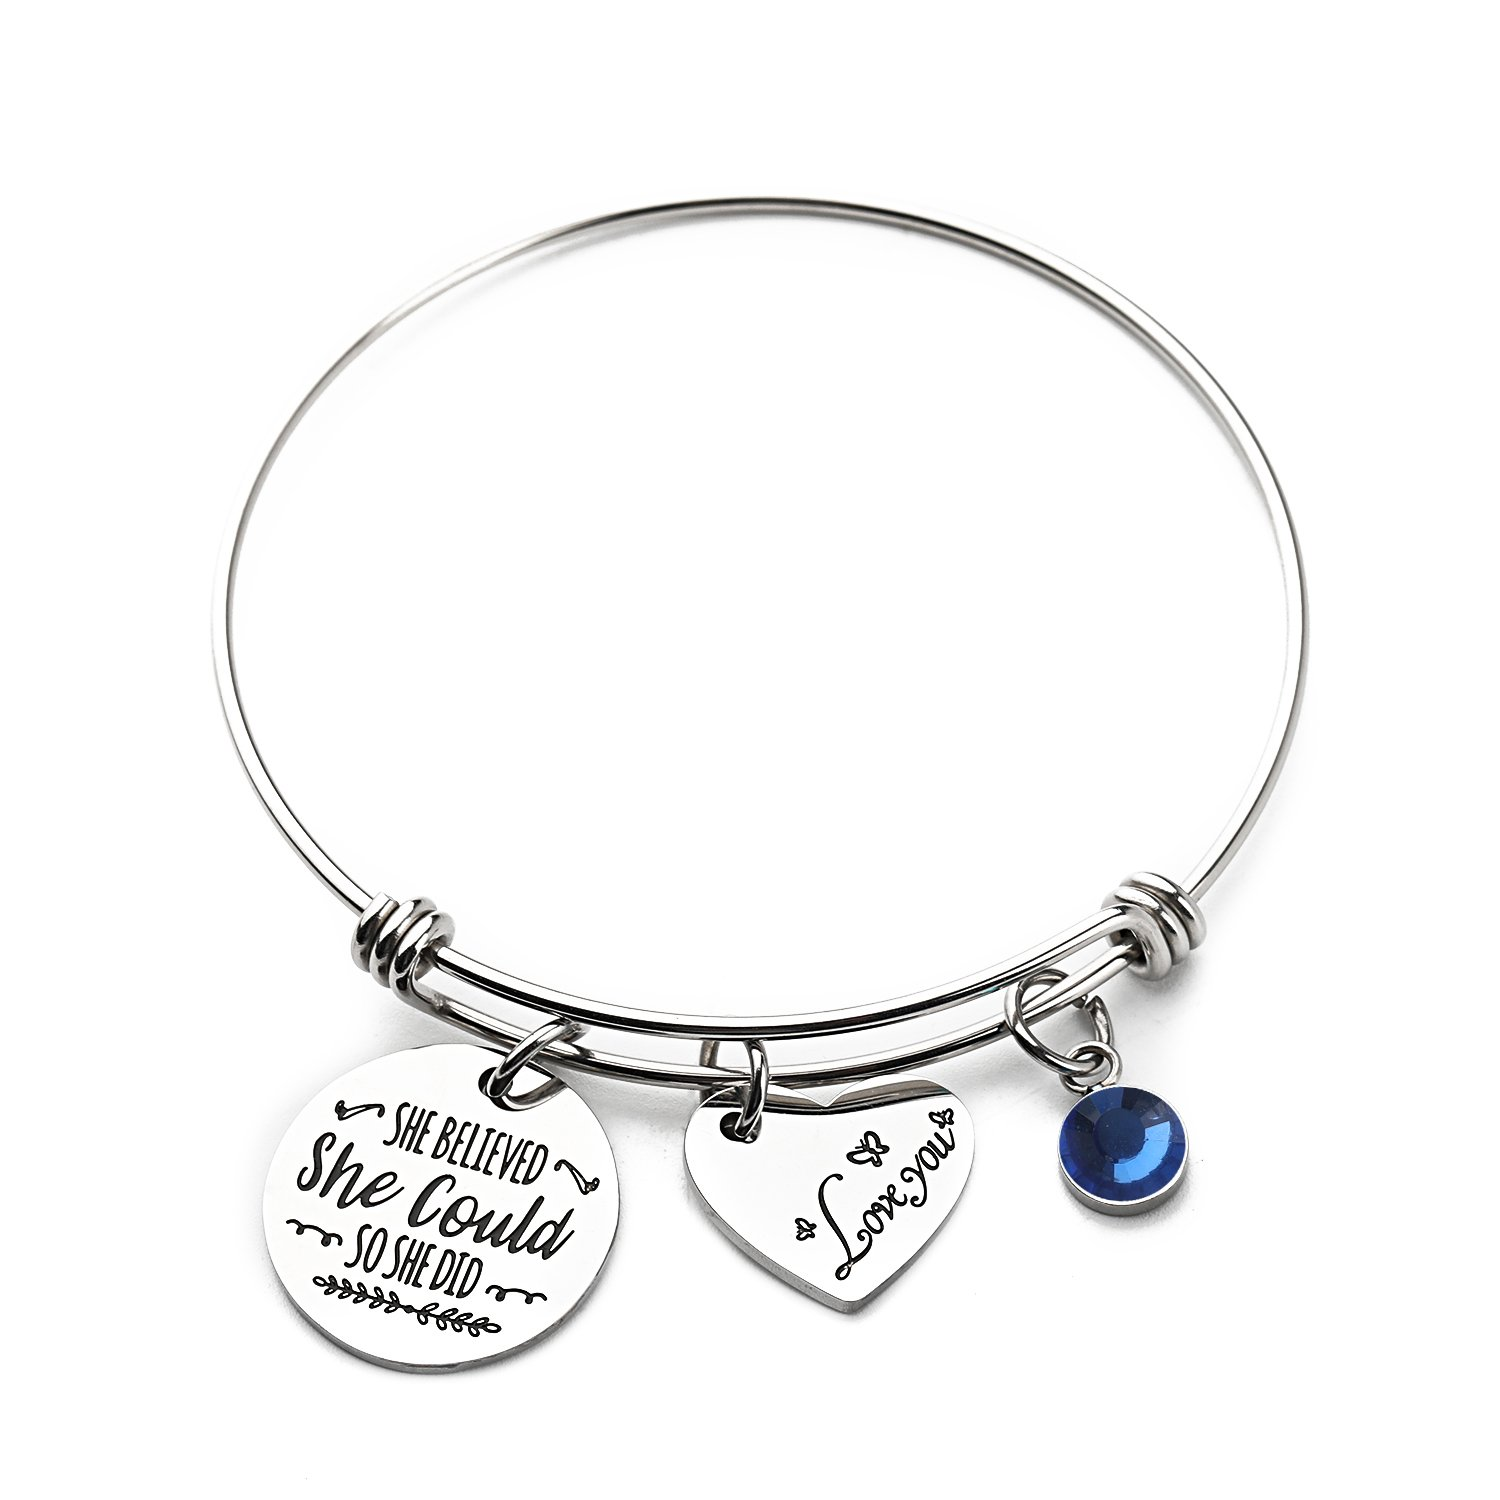 Haoze Birthday Gift Jewelry She Believed She Could So She Did Bangle Bracelet Inspirational Graduation Gift for Girl,Women (Sapphire-september) by Haoze (Image #1)